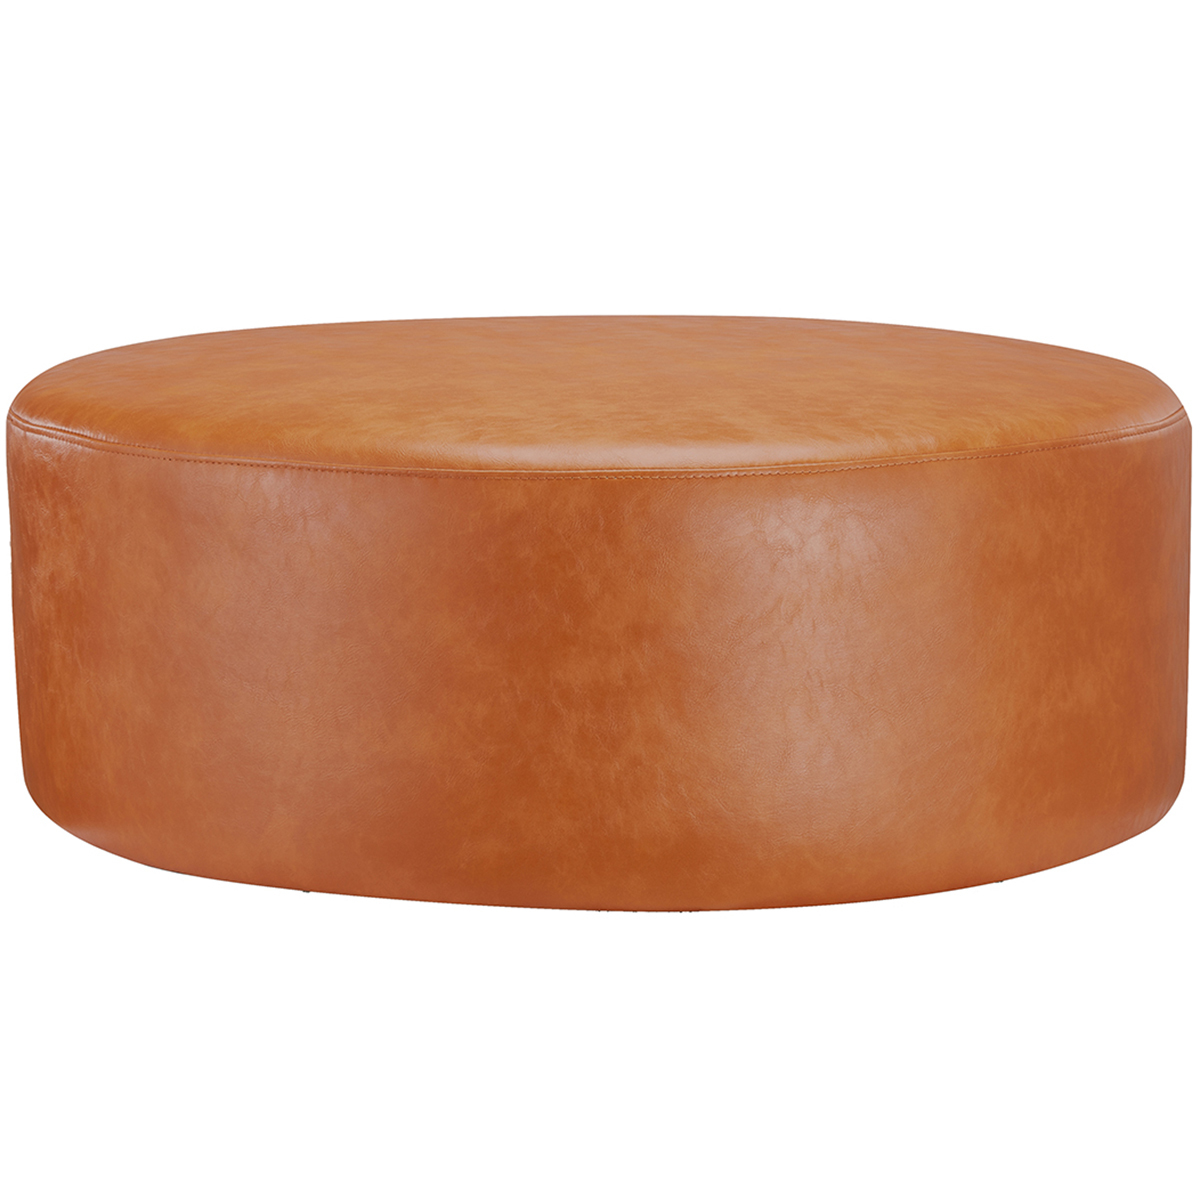 New Large Round Victoria Faux Leather Ottoman Oslo Home